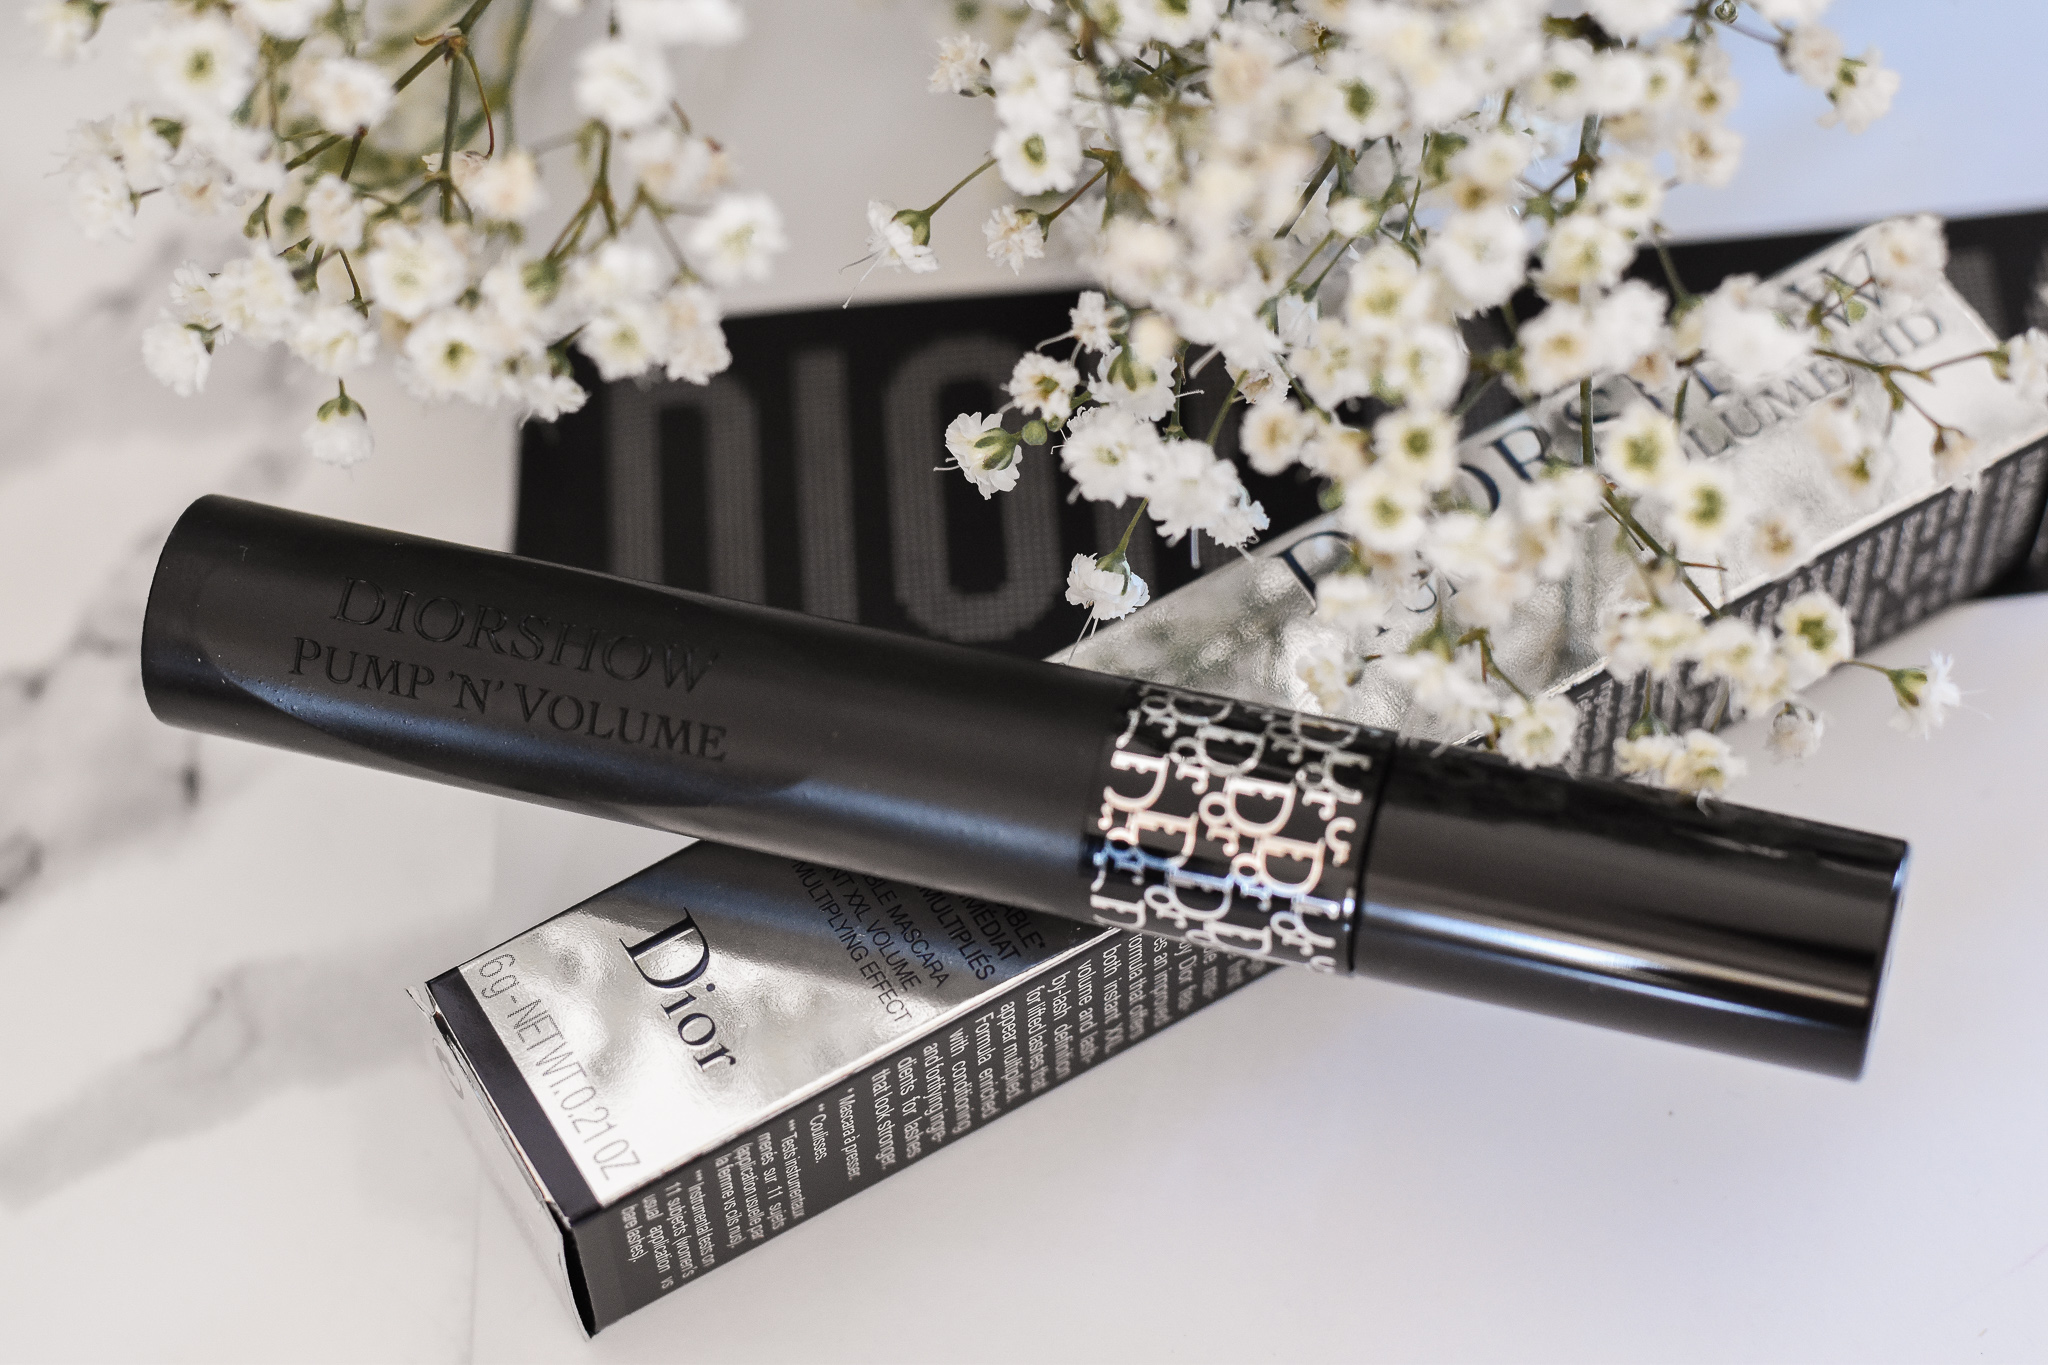 Diorshow Pump 'N 'Volume HD Mascara